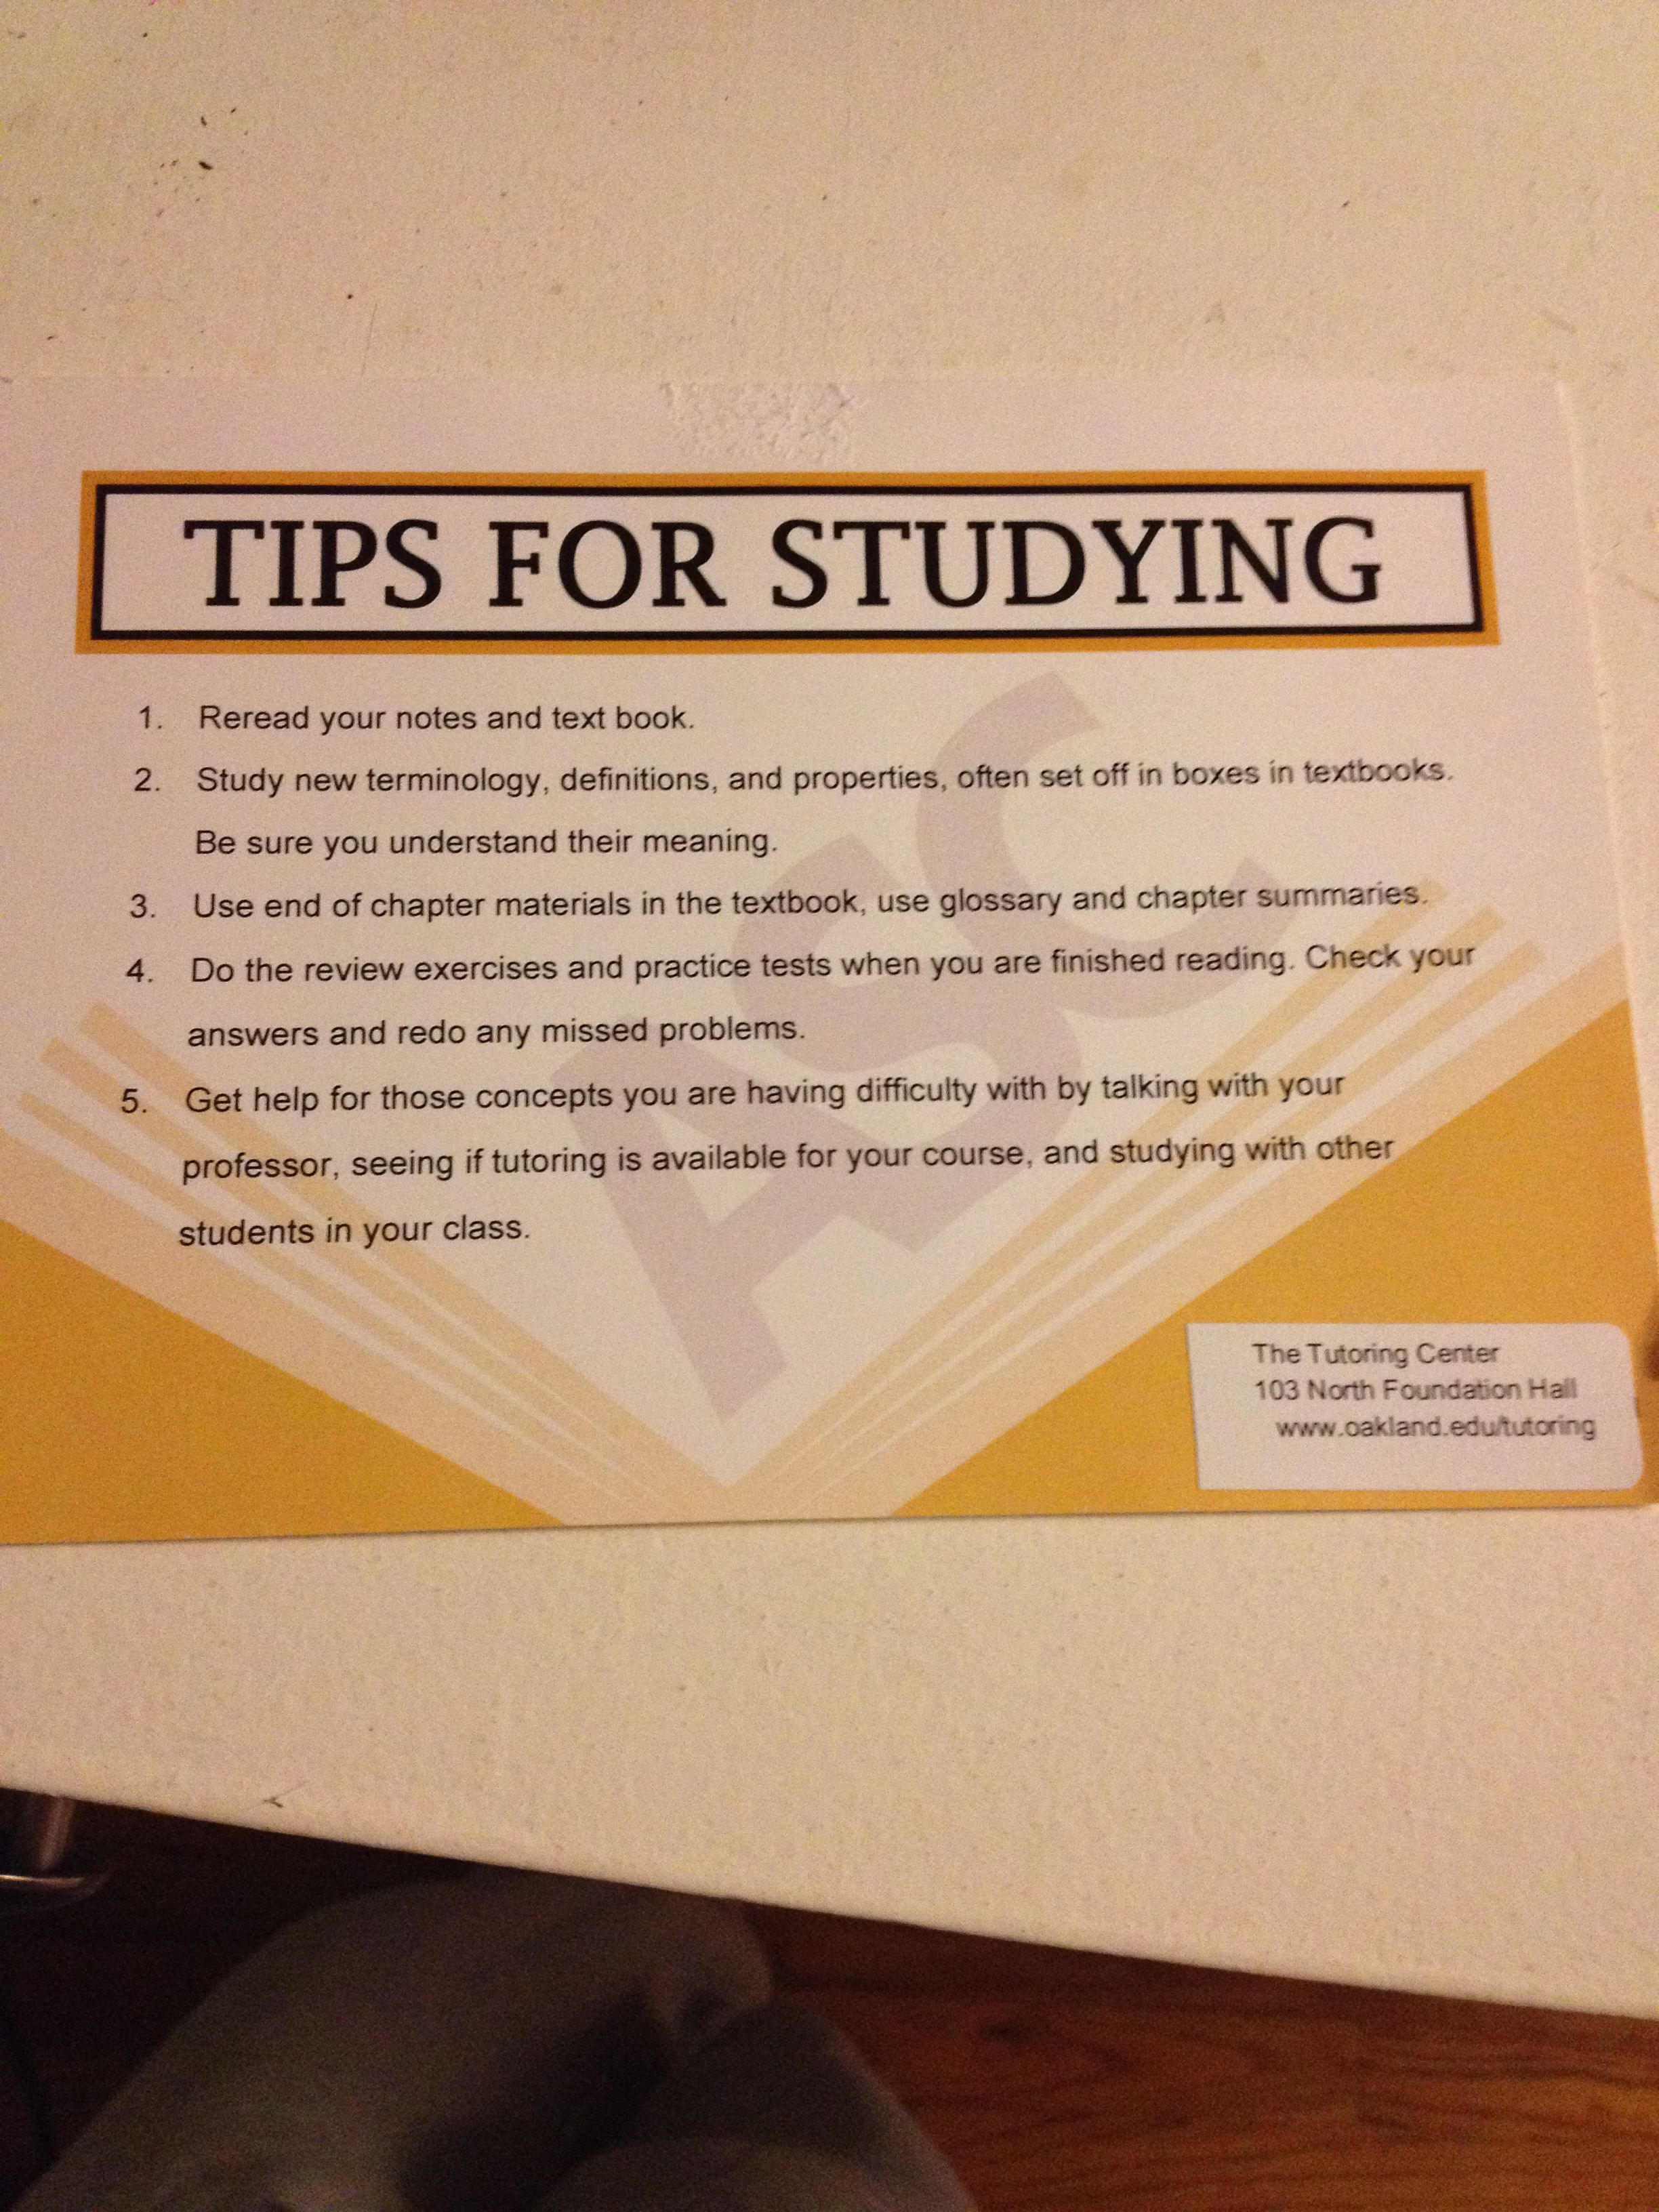 Tips For Studying From Oakland University Schoolstudy Tips